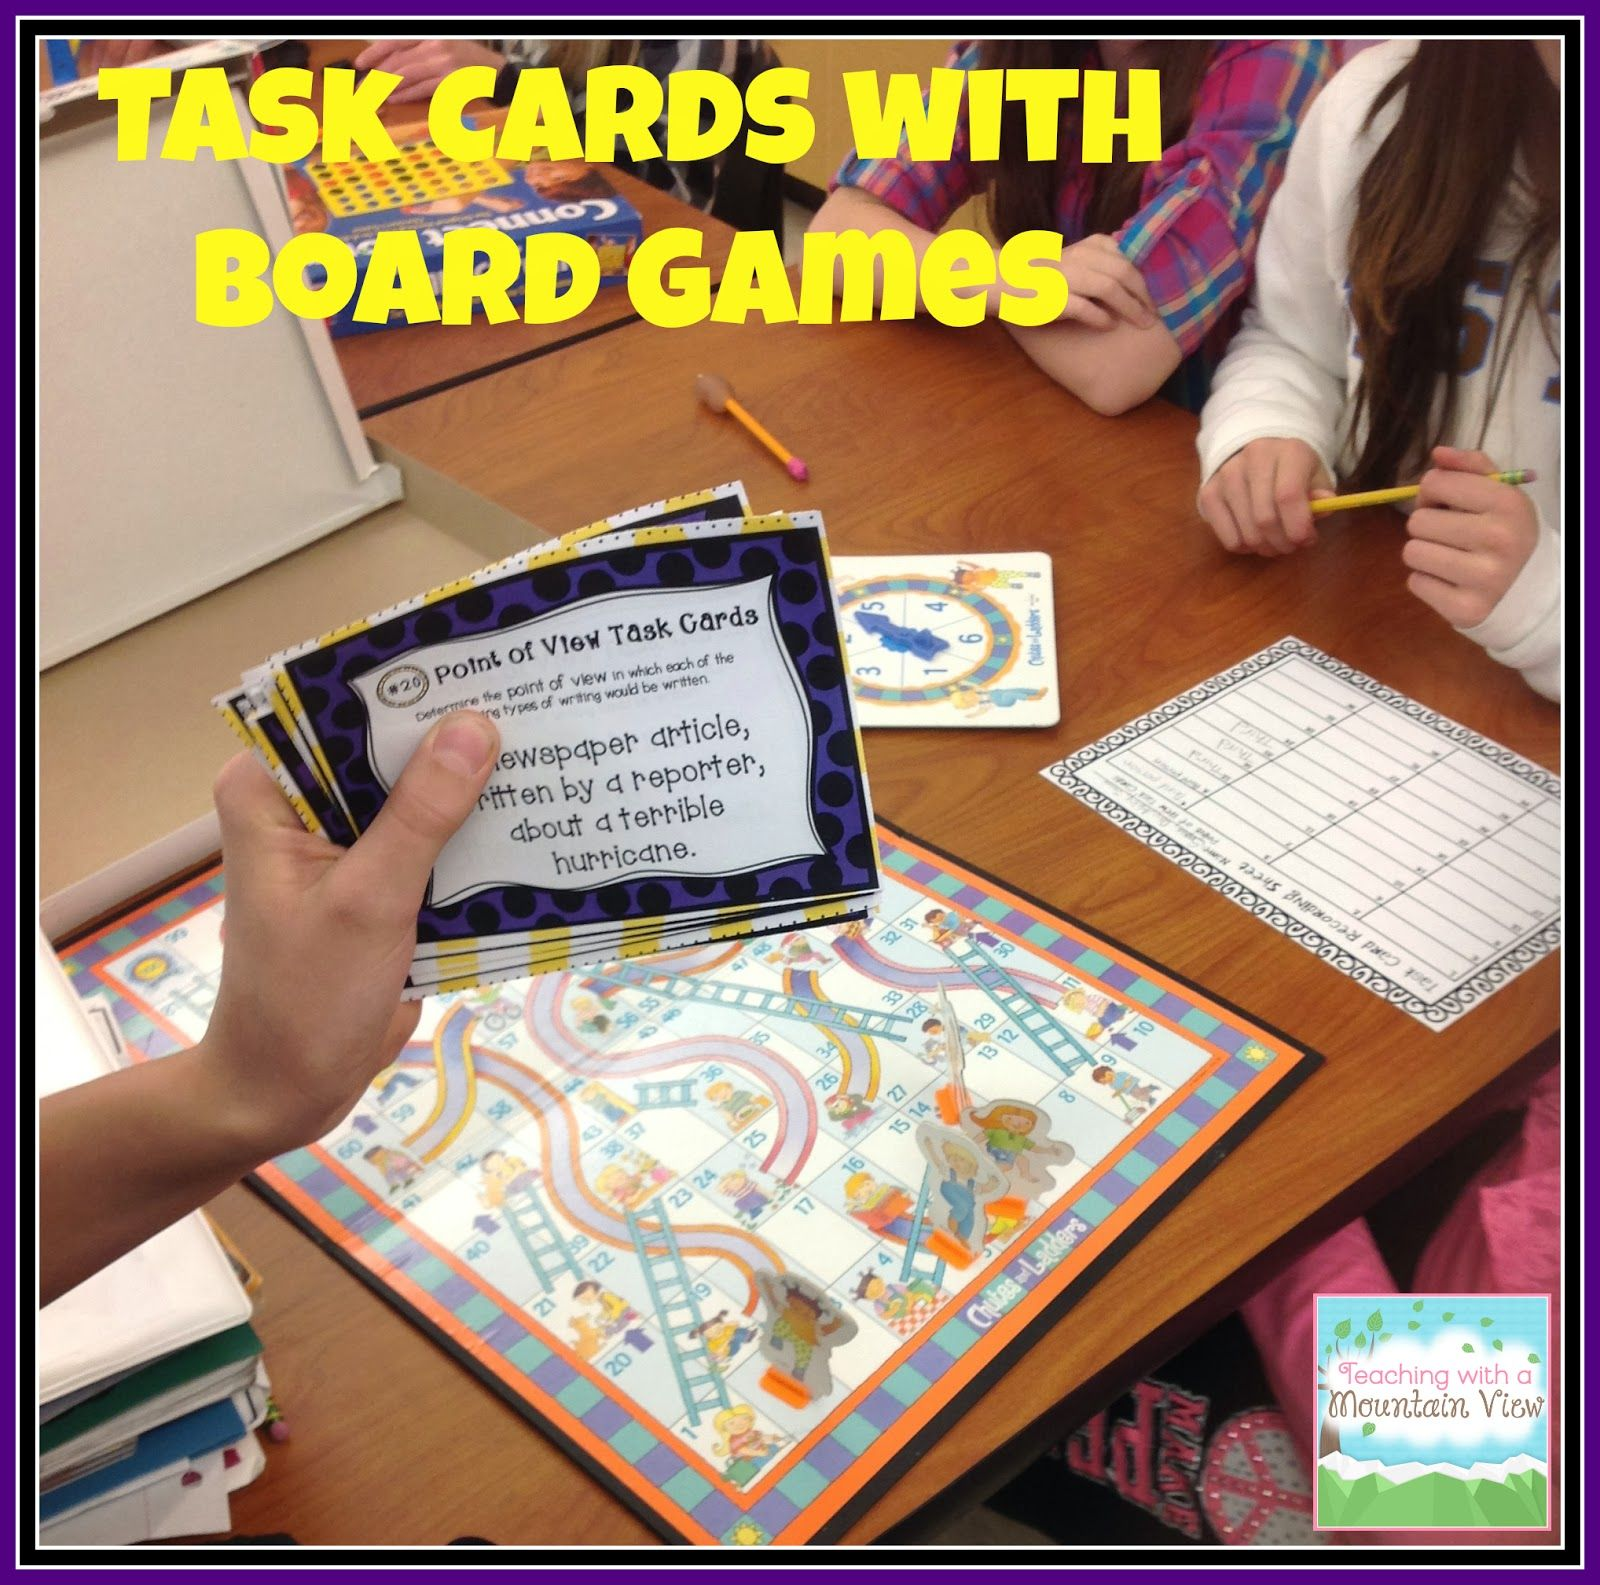 Task Card Corner: Using Board Games To Engage Students